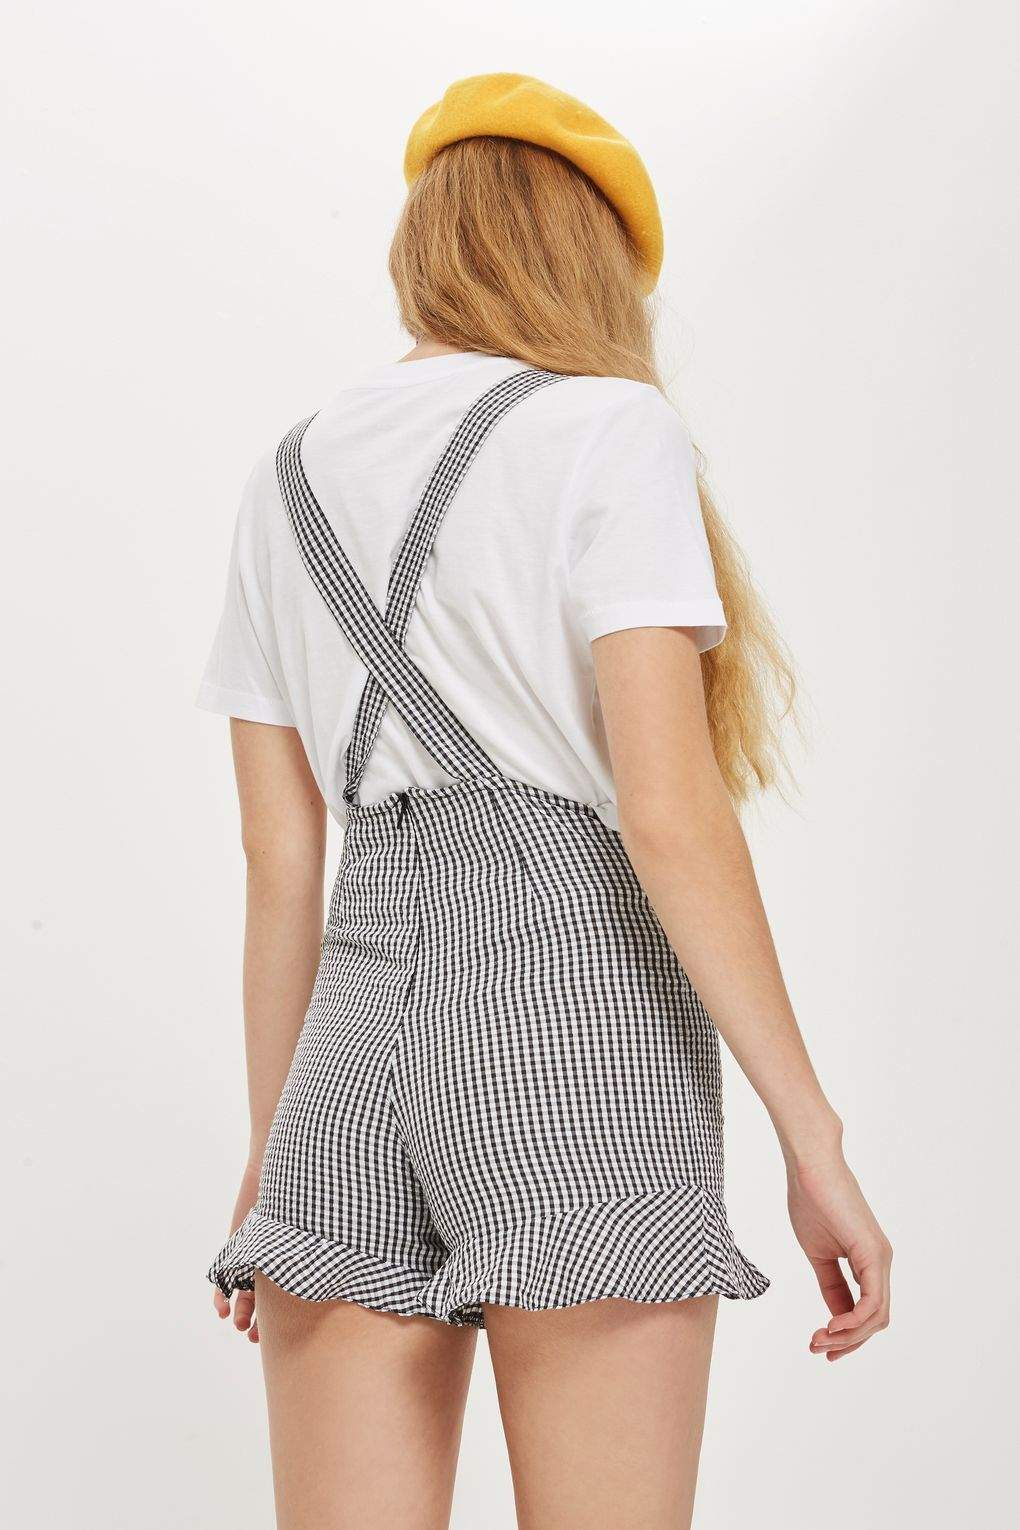 High Street Pinafore Gingham Romper Playsuit in Black - Playsuit - BKLYN Bodies - BKLYN Bodies